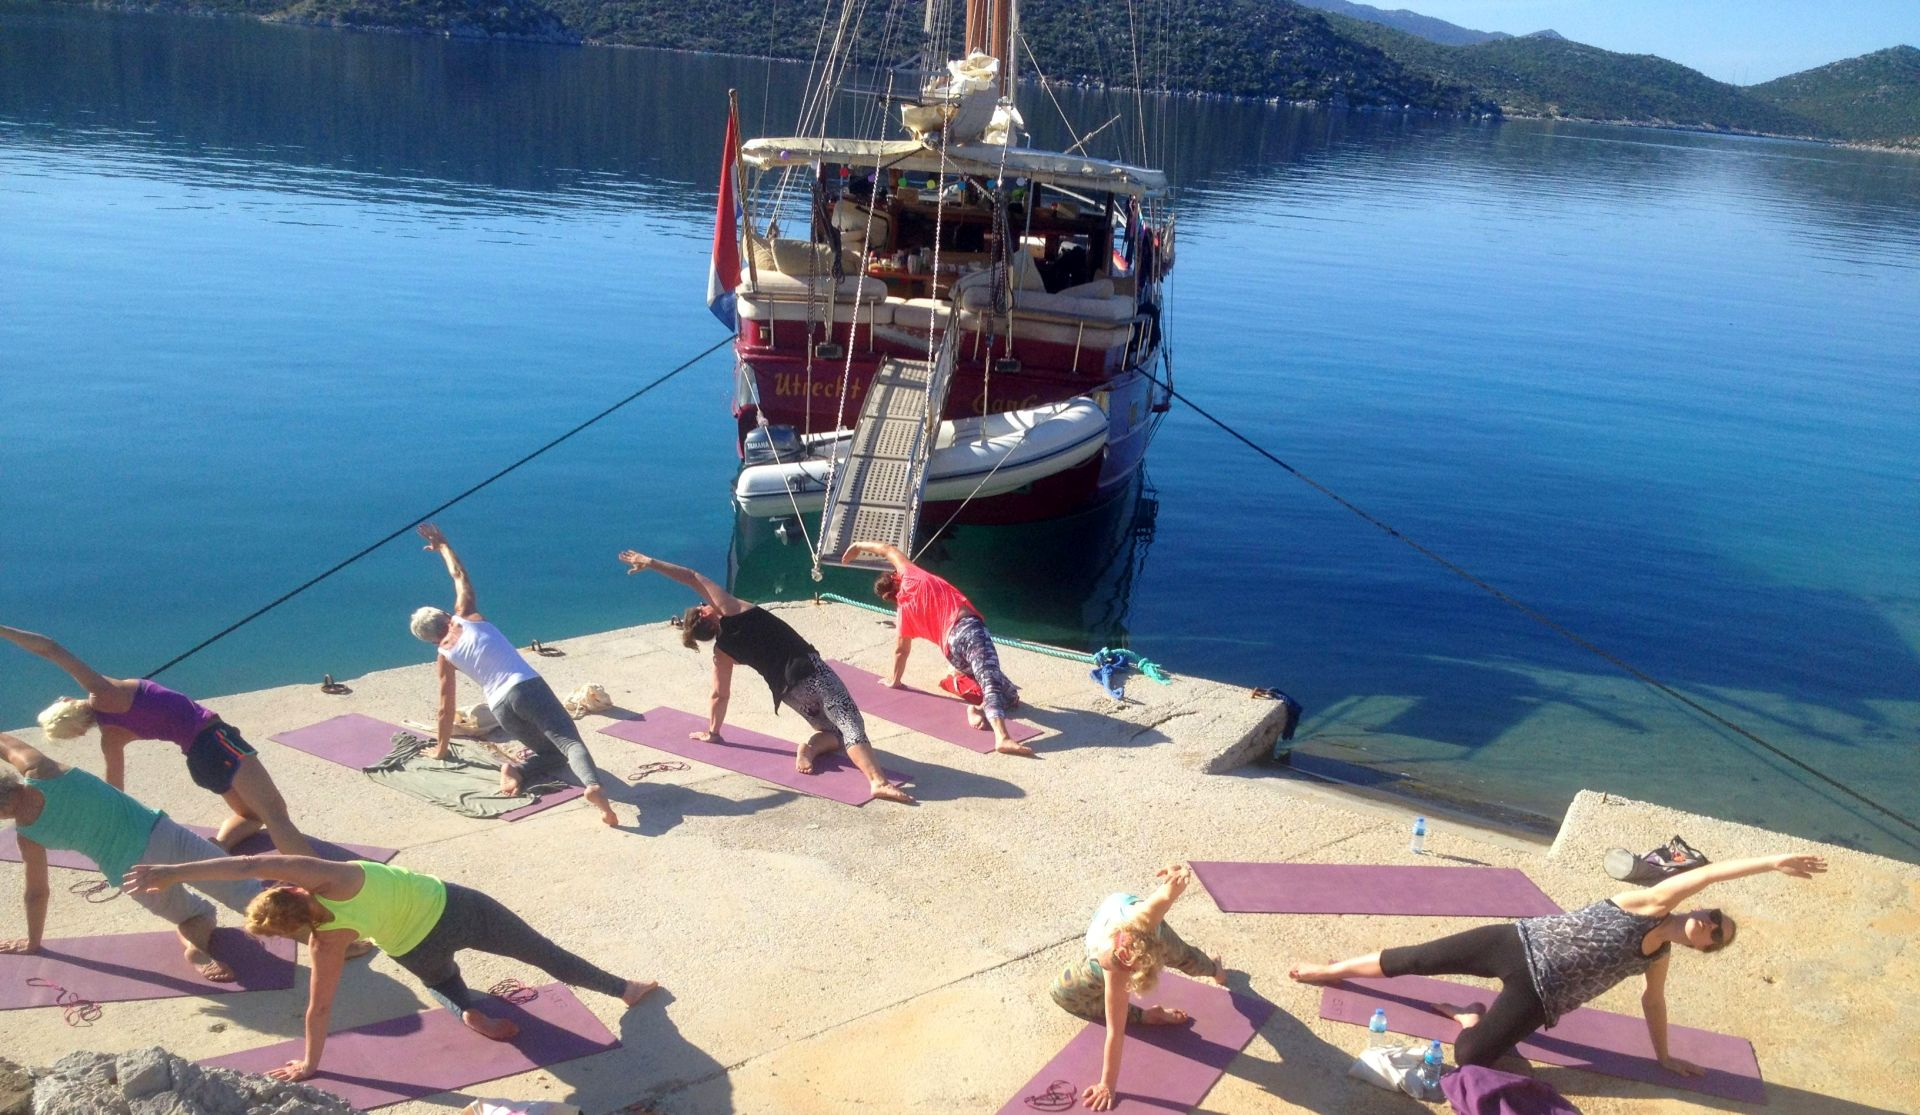 yoga retreat op zeilschip in Griekenland